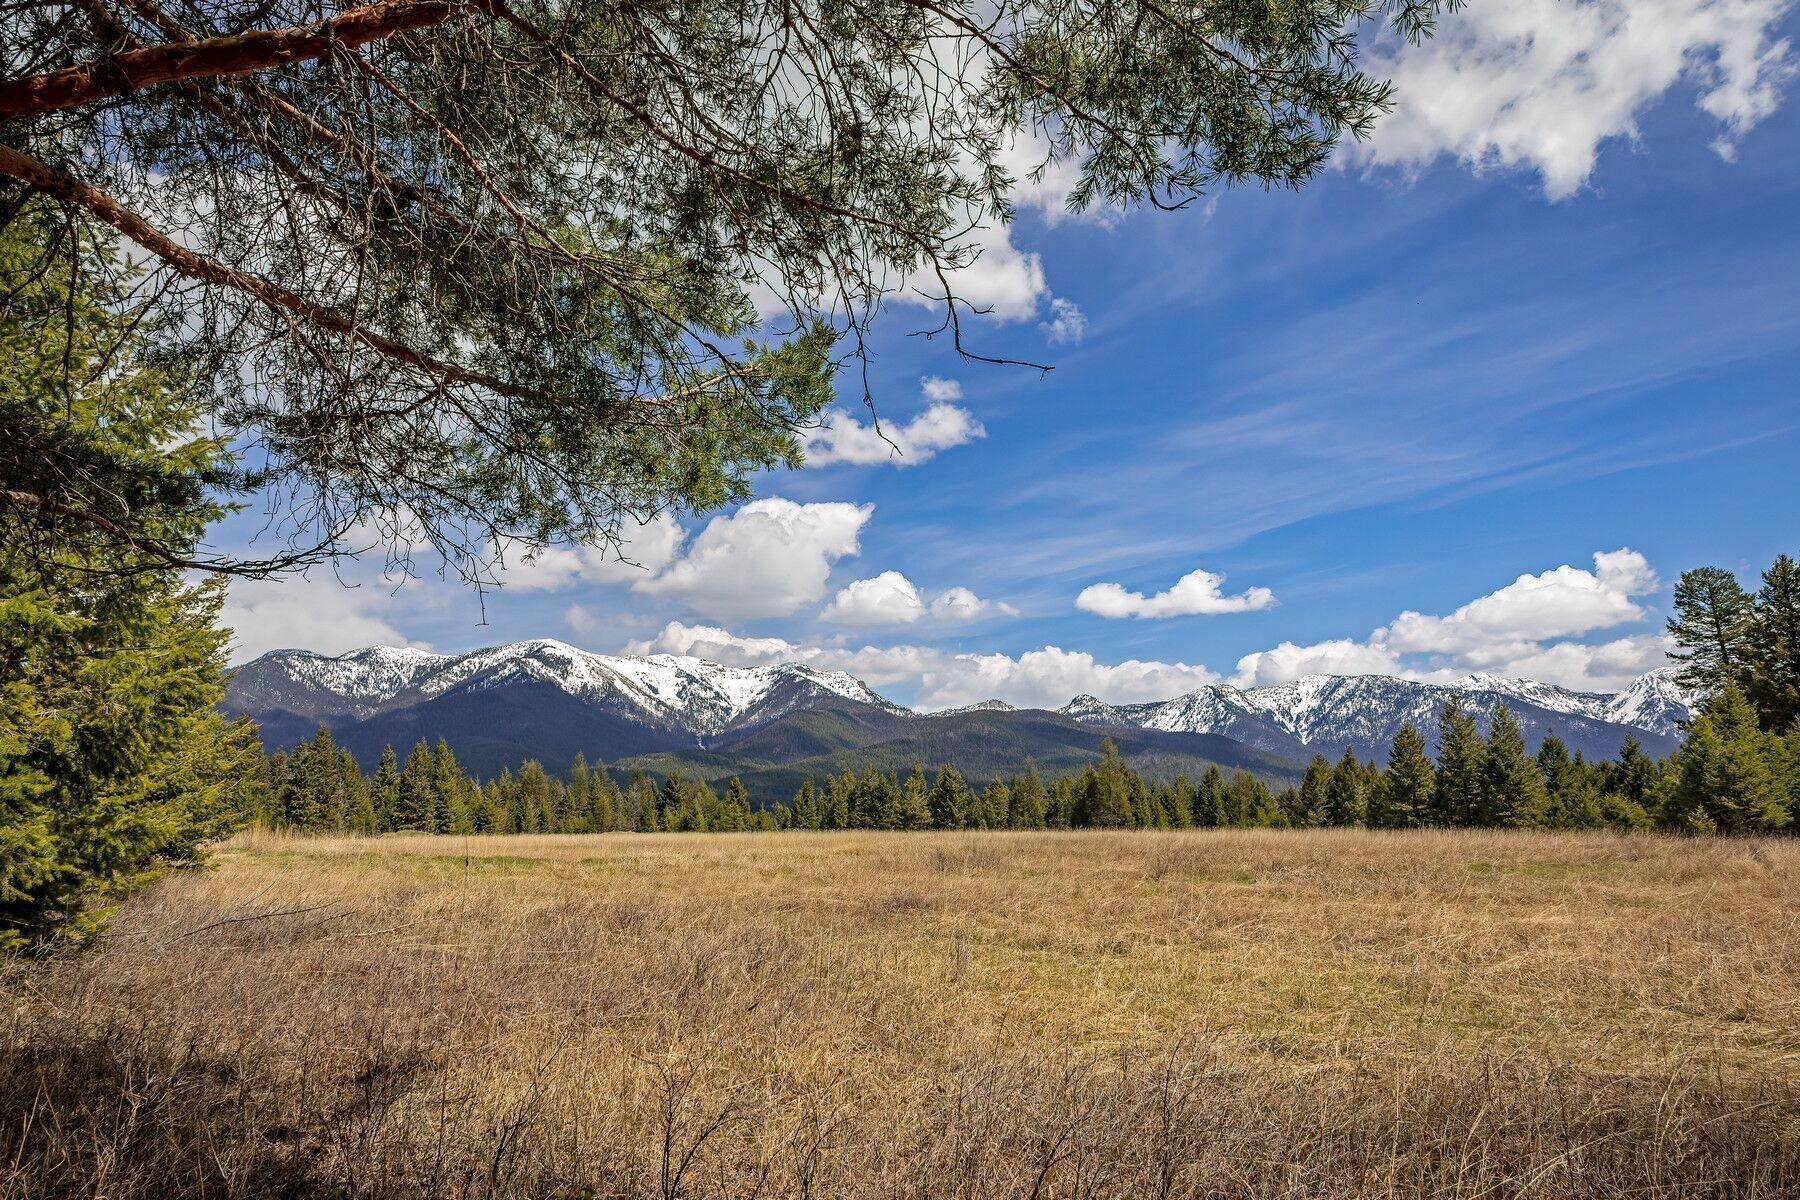 Property for Sale at Nhn South Many Lakes Drive Kalispell, Montana 59901 United States